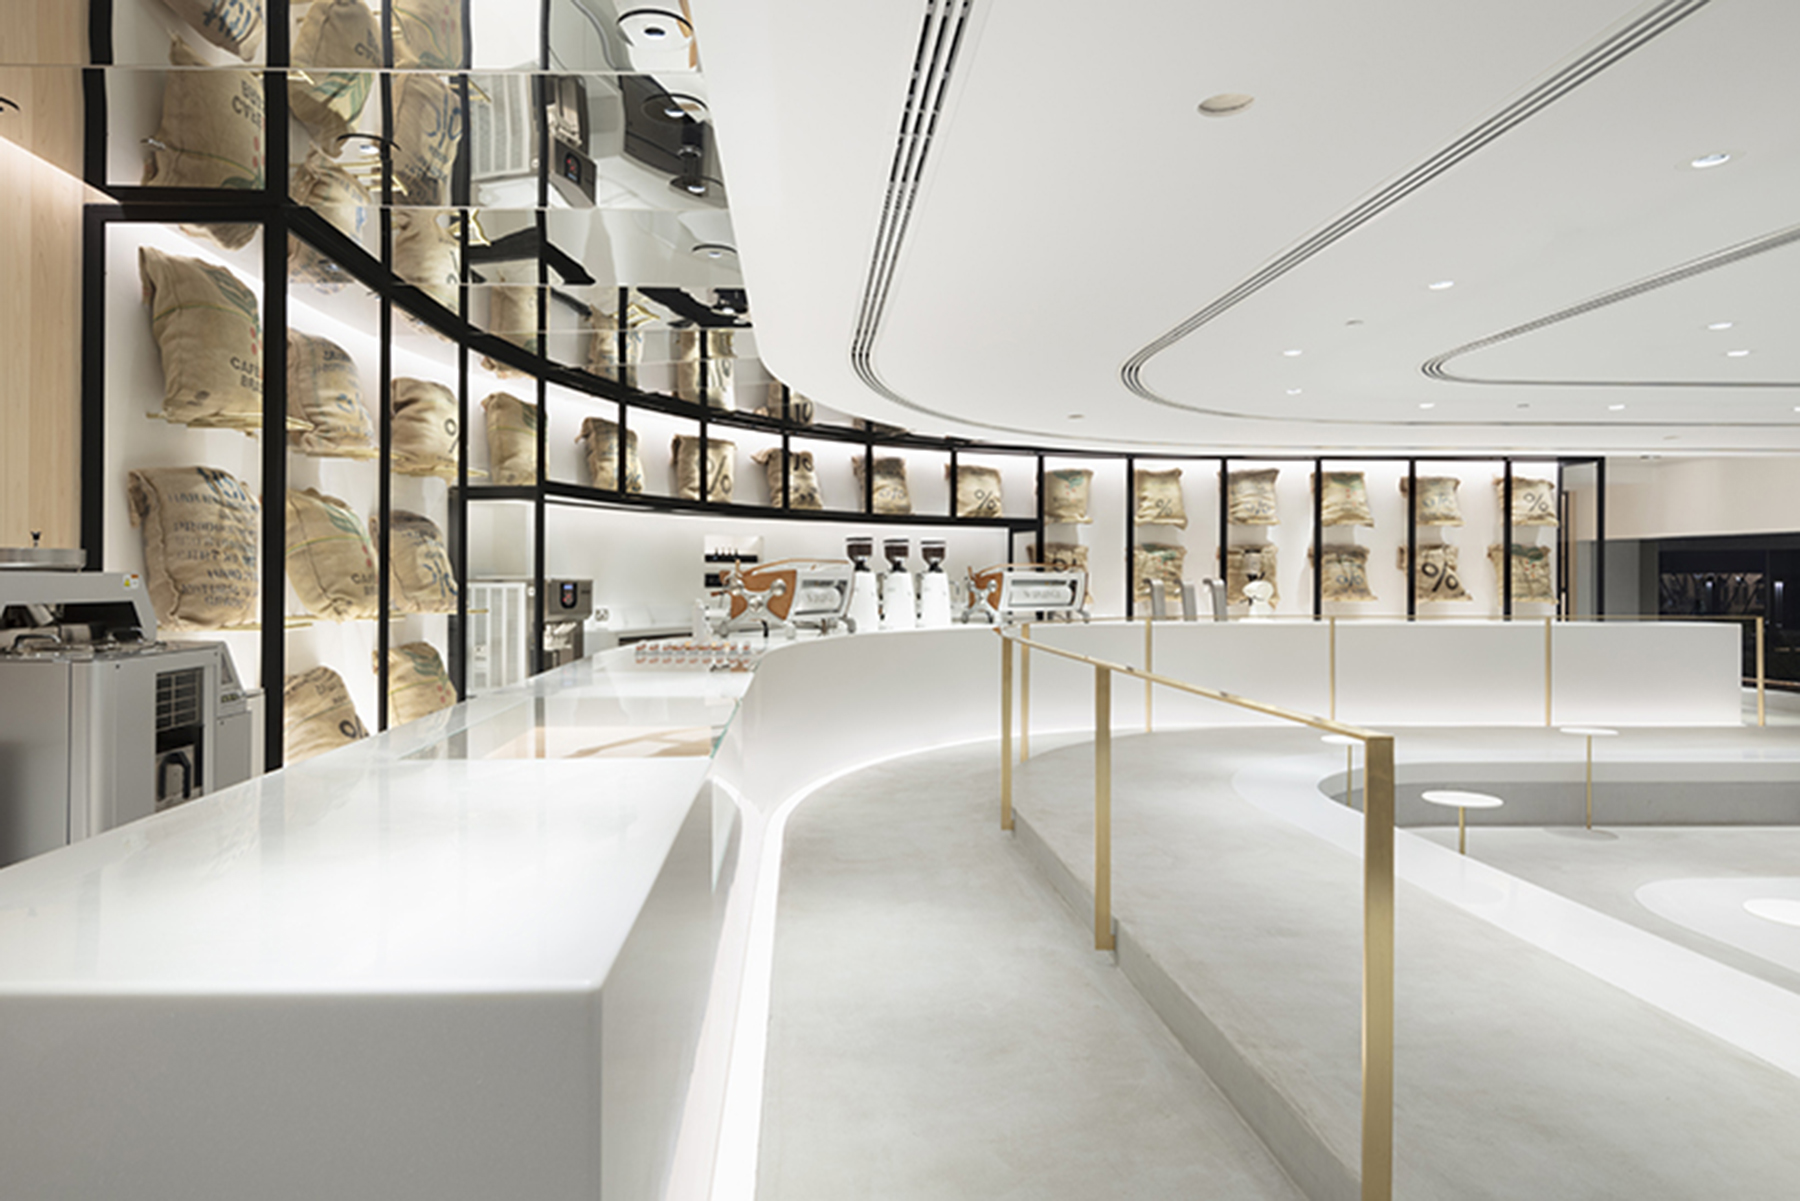 Arabica Nando S New Minimal Layered Coffee Shop Hkz Mena Design Magazine